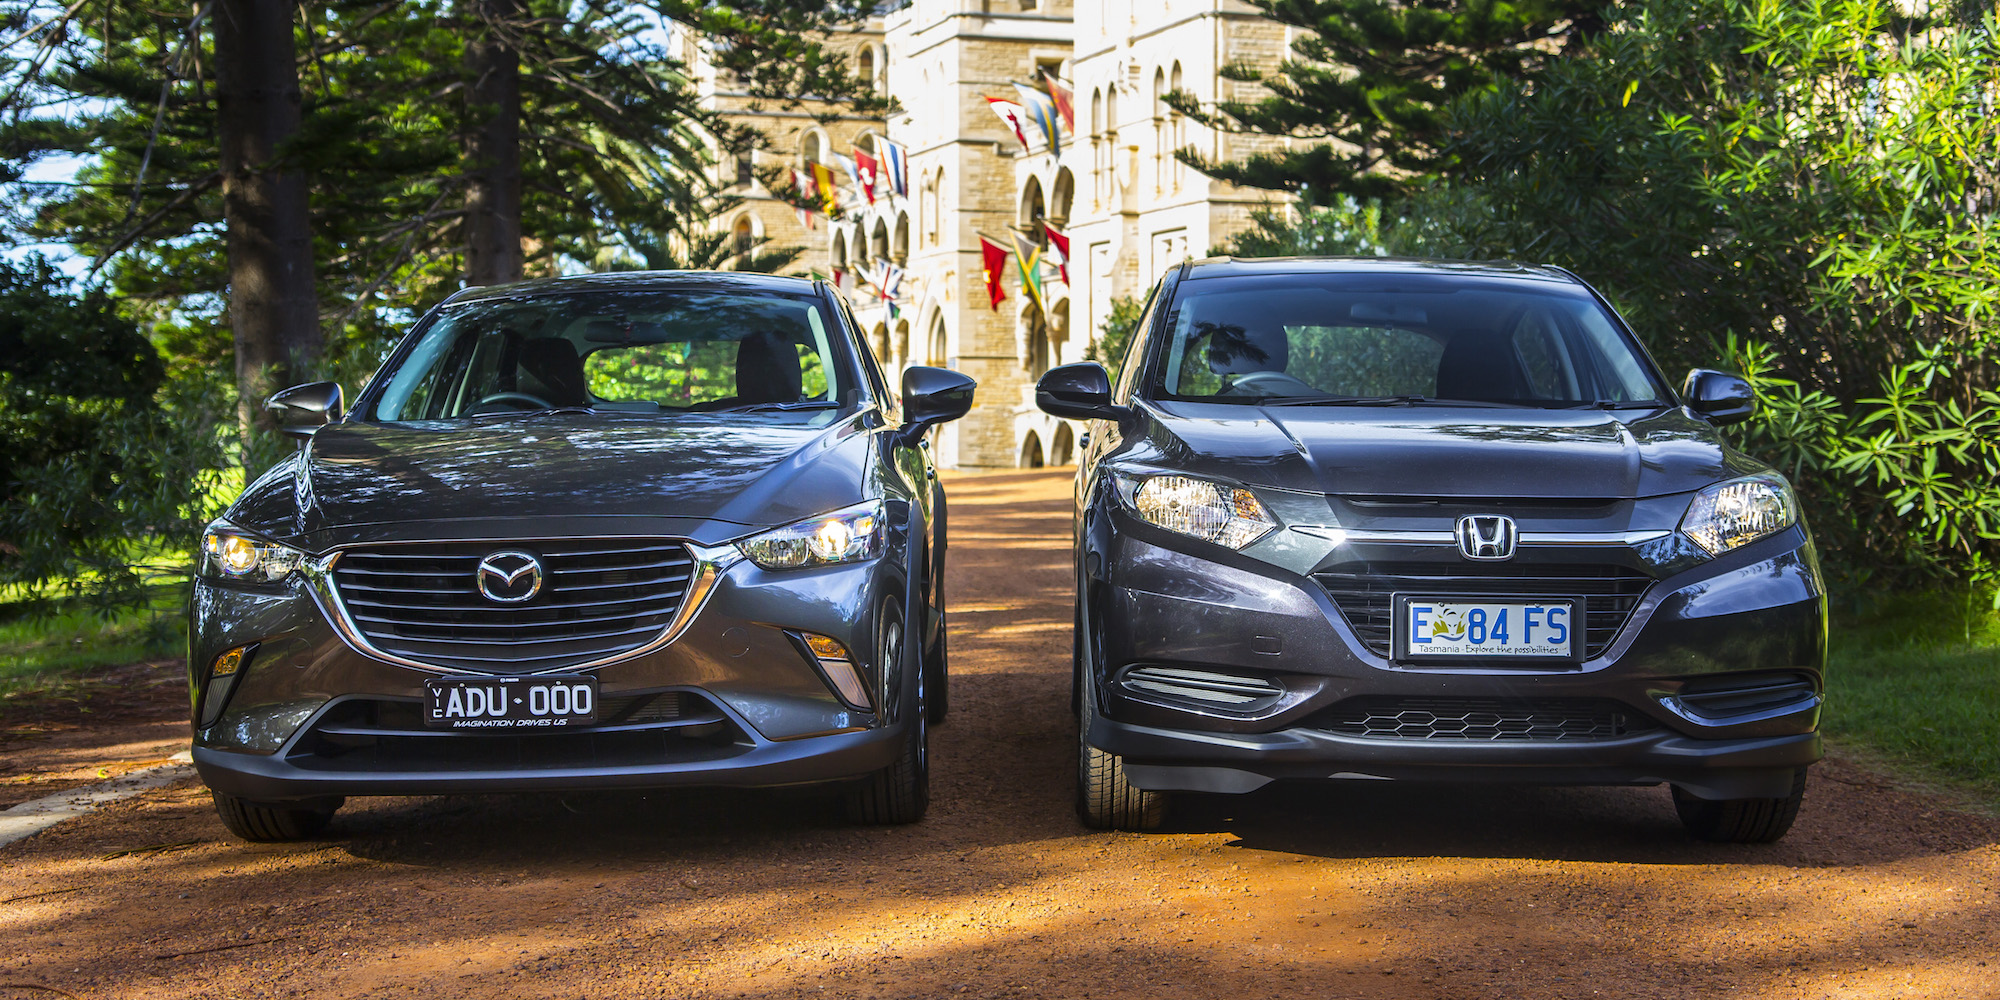 Cx 3 Vs Hrv >> Honda Hr V Vti V Mazda Cx 3 Maxx Comparison Review Photos 1